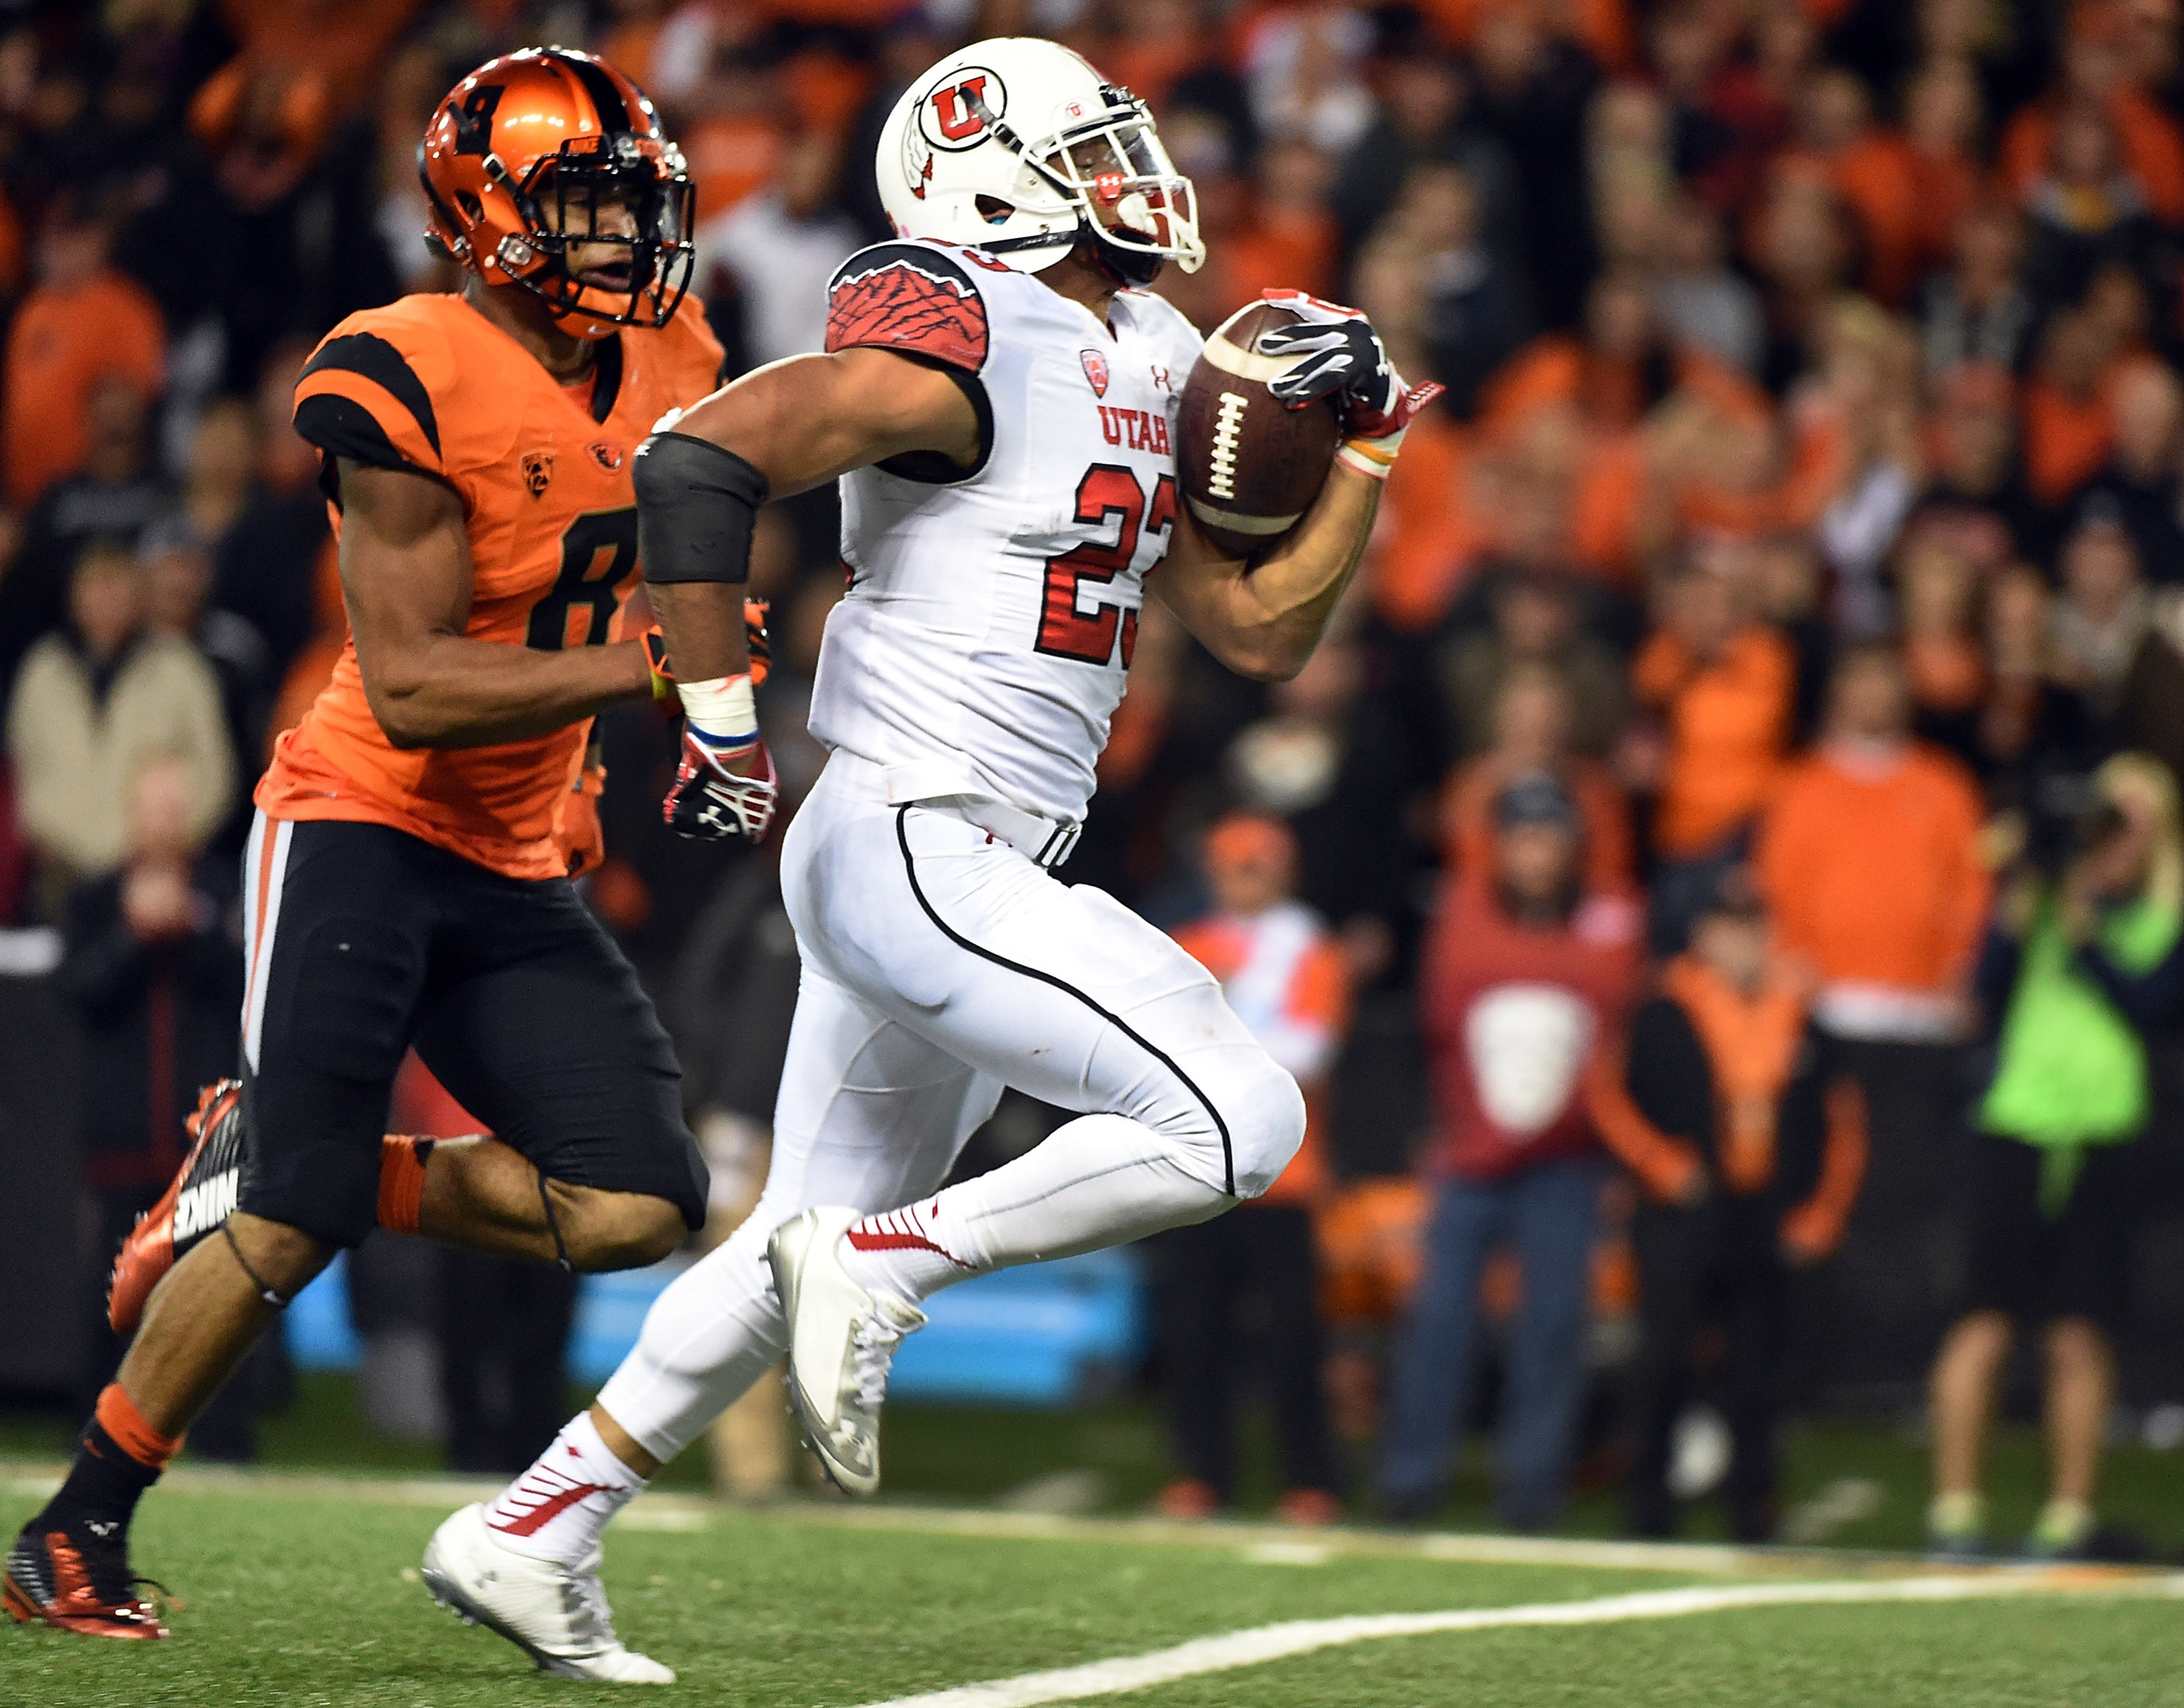 Utah running back Devontae Booker (23) scored the go-ahead touchdown in regulation, and a touchdown in each of the overtimes to will Utah to the victory over Oregon State in Corvallis, Ore.